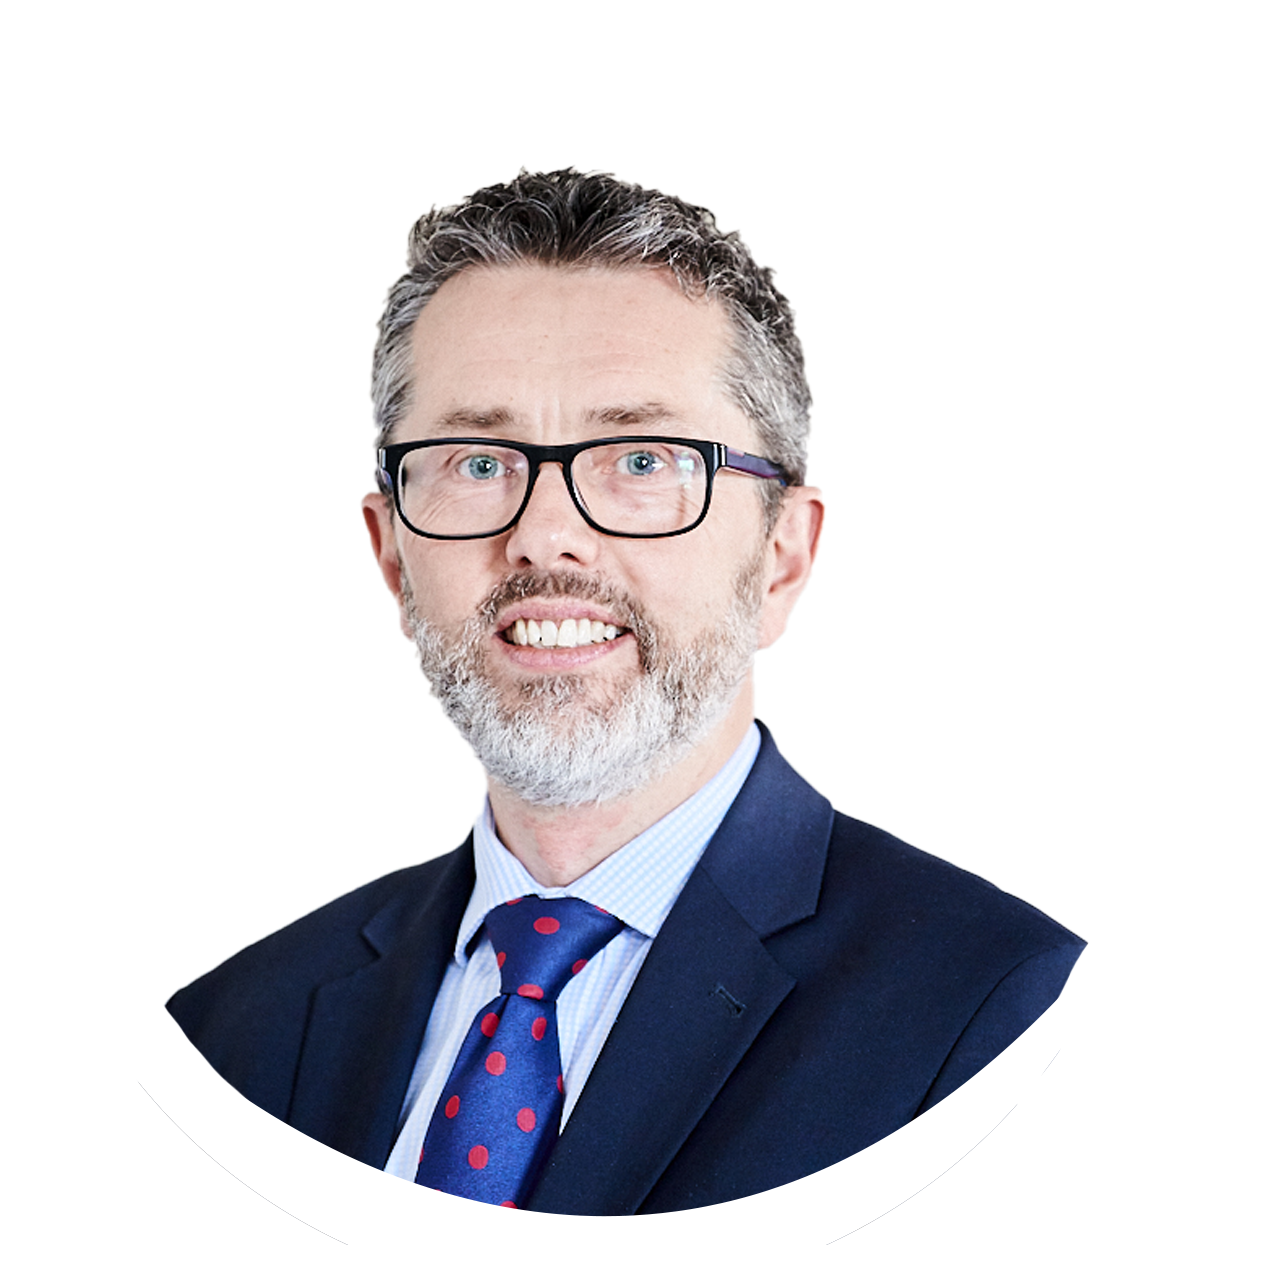 Jim Cardwell | Head of Policy and Development, Northern PowerGrid